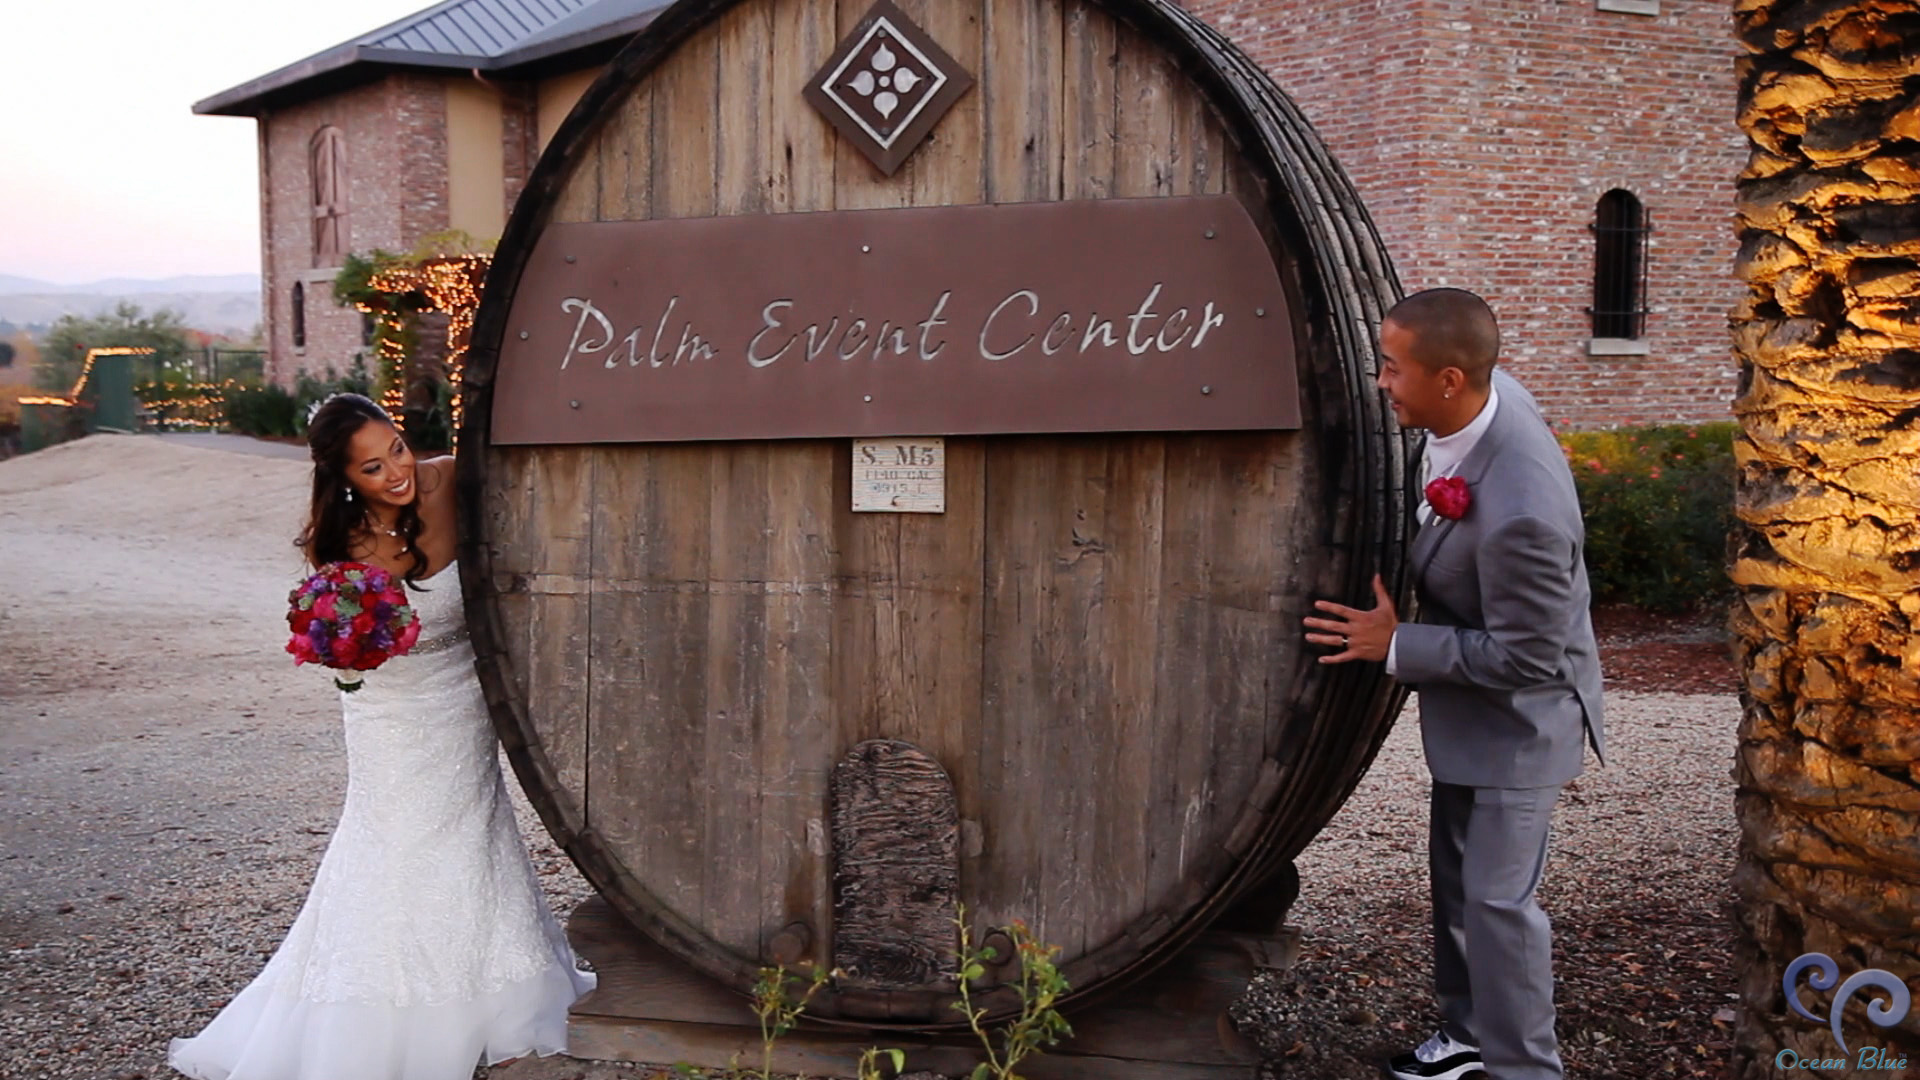 palm_event_center_bride_groom_barrel.jpg